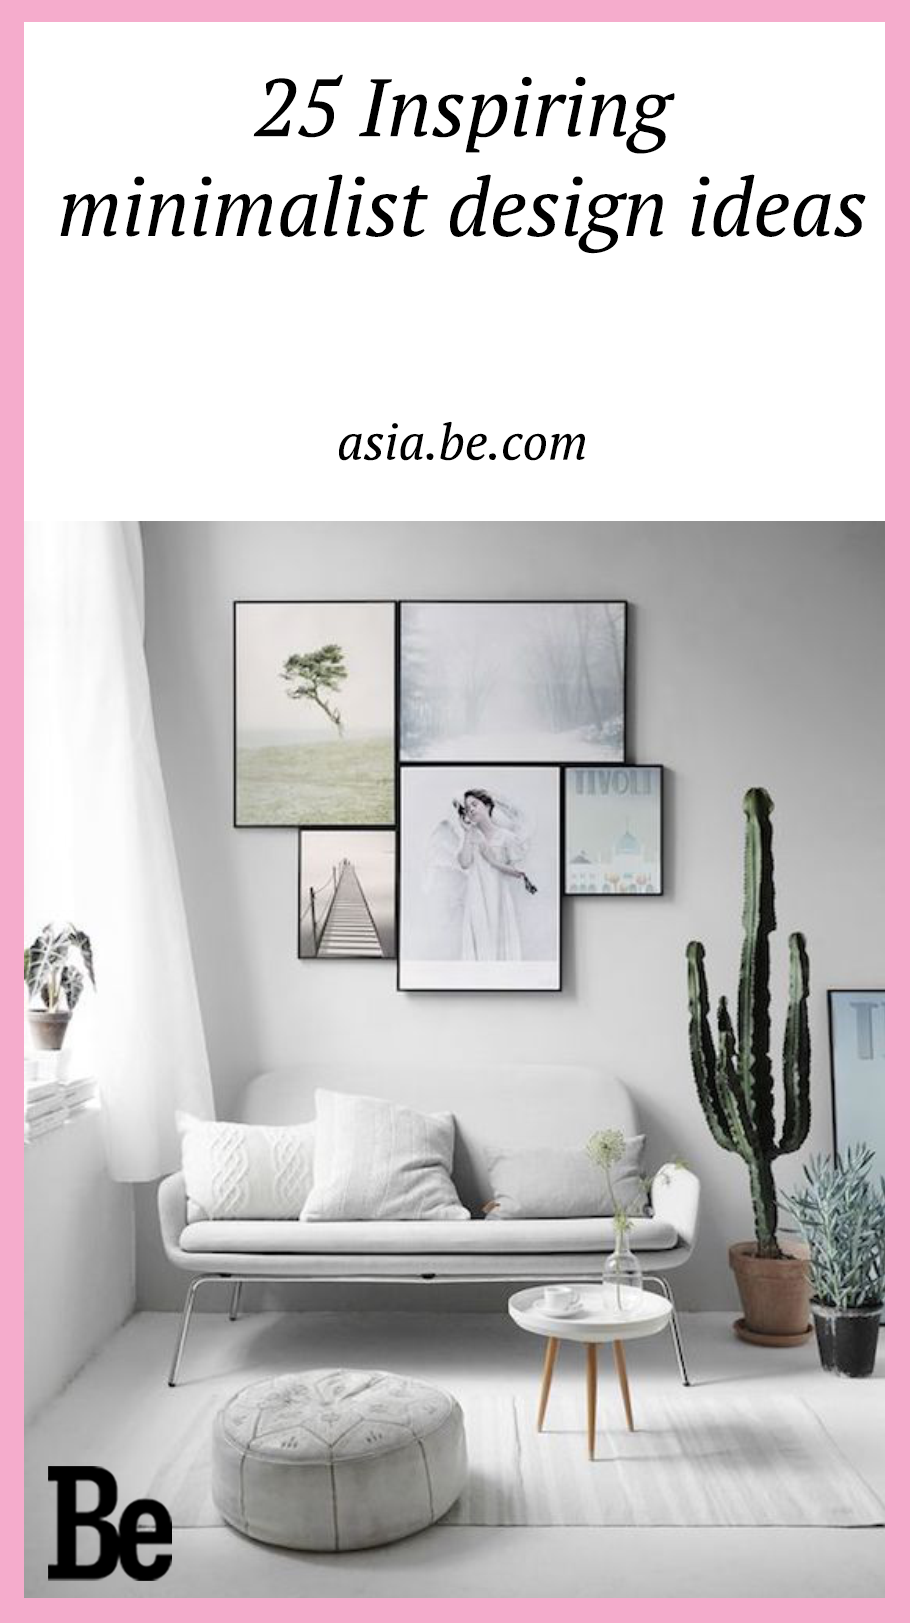 If 'Less is more' is your mantra here some design ideas to suit your stylishly clean aesthetic.